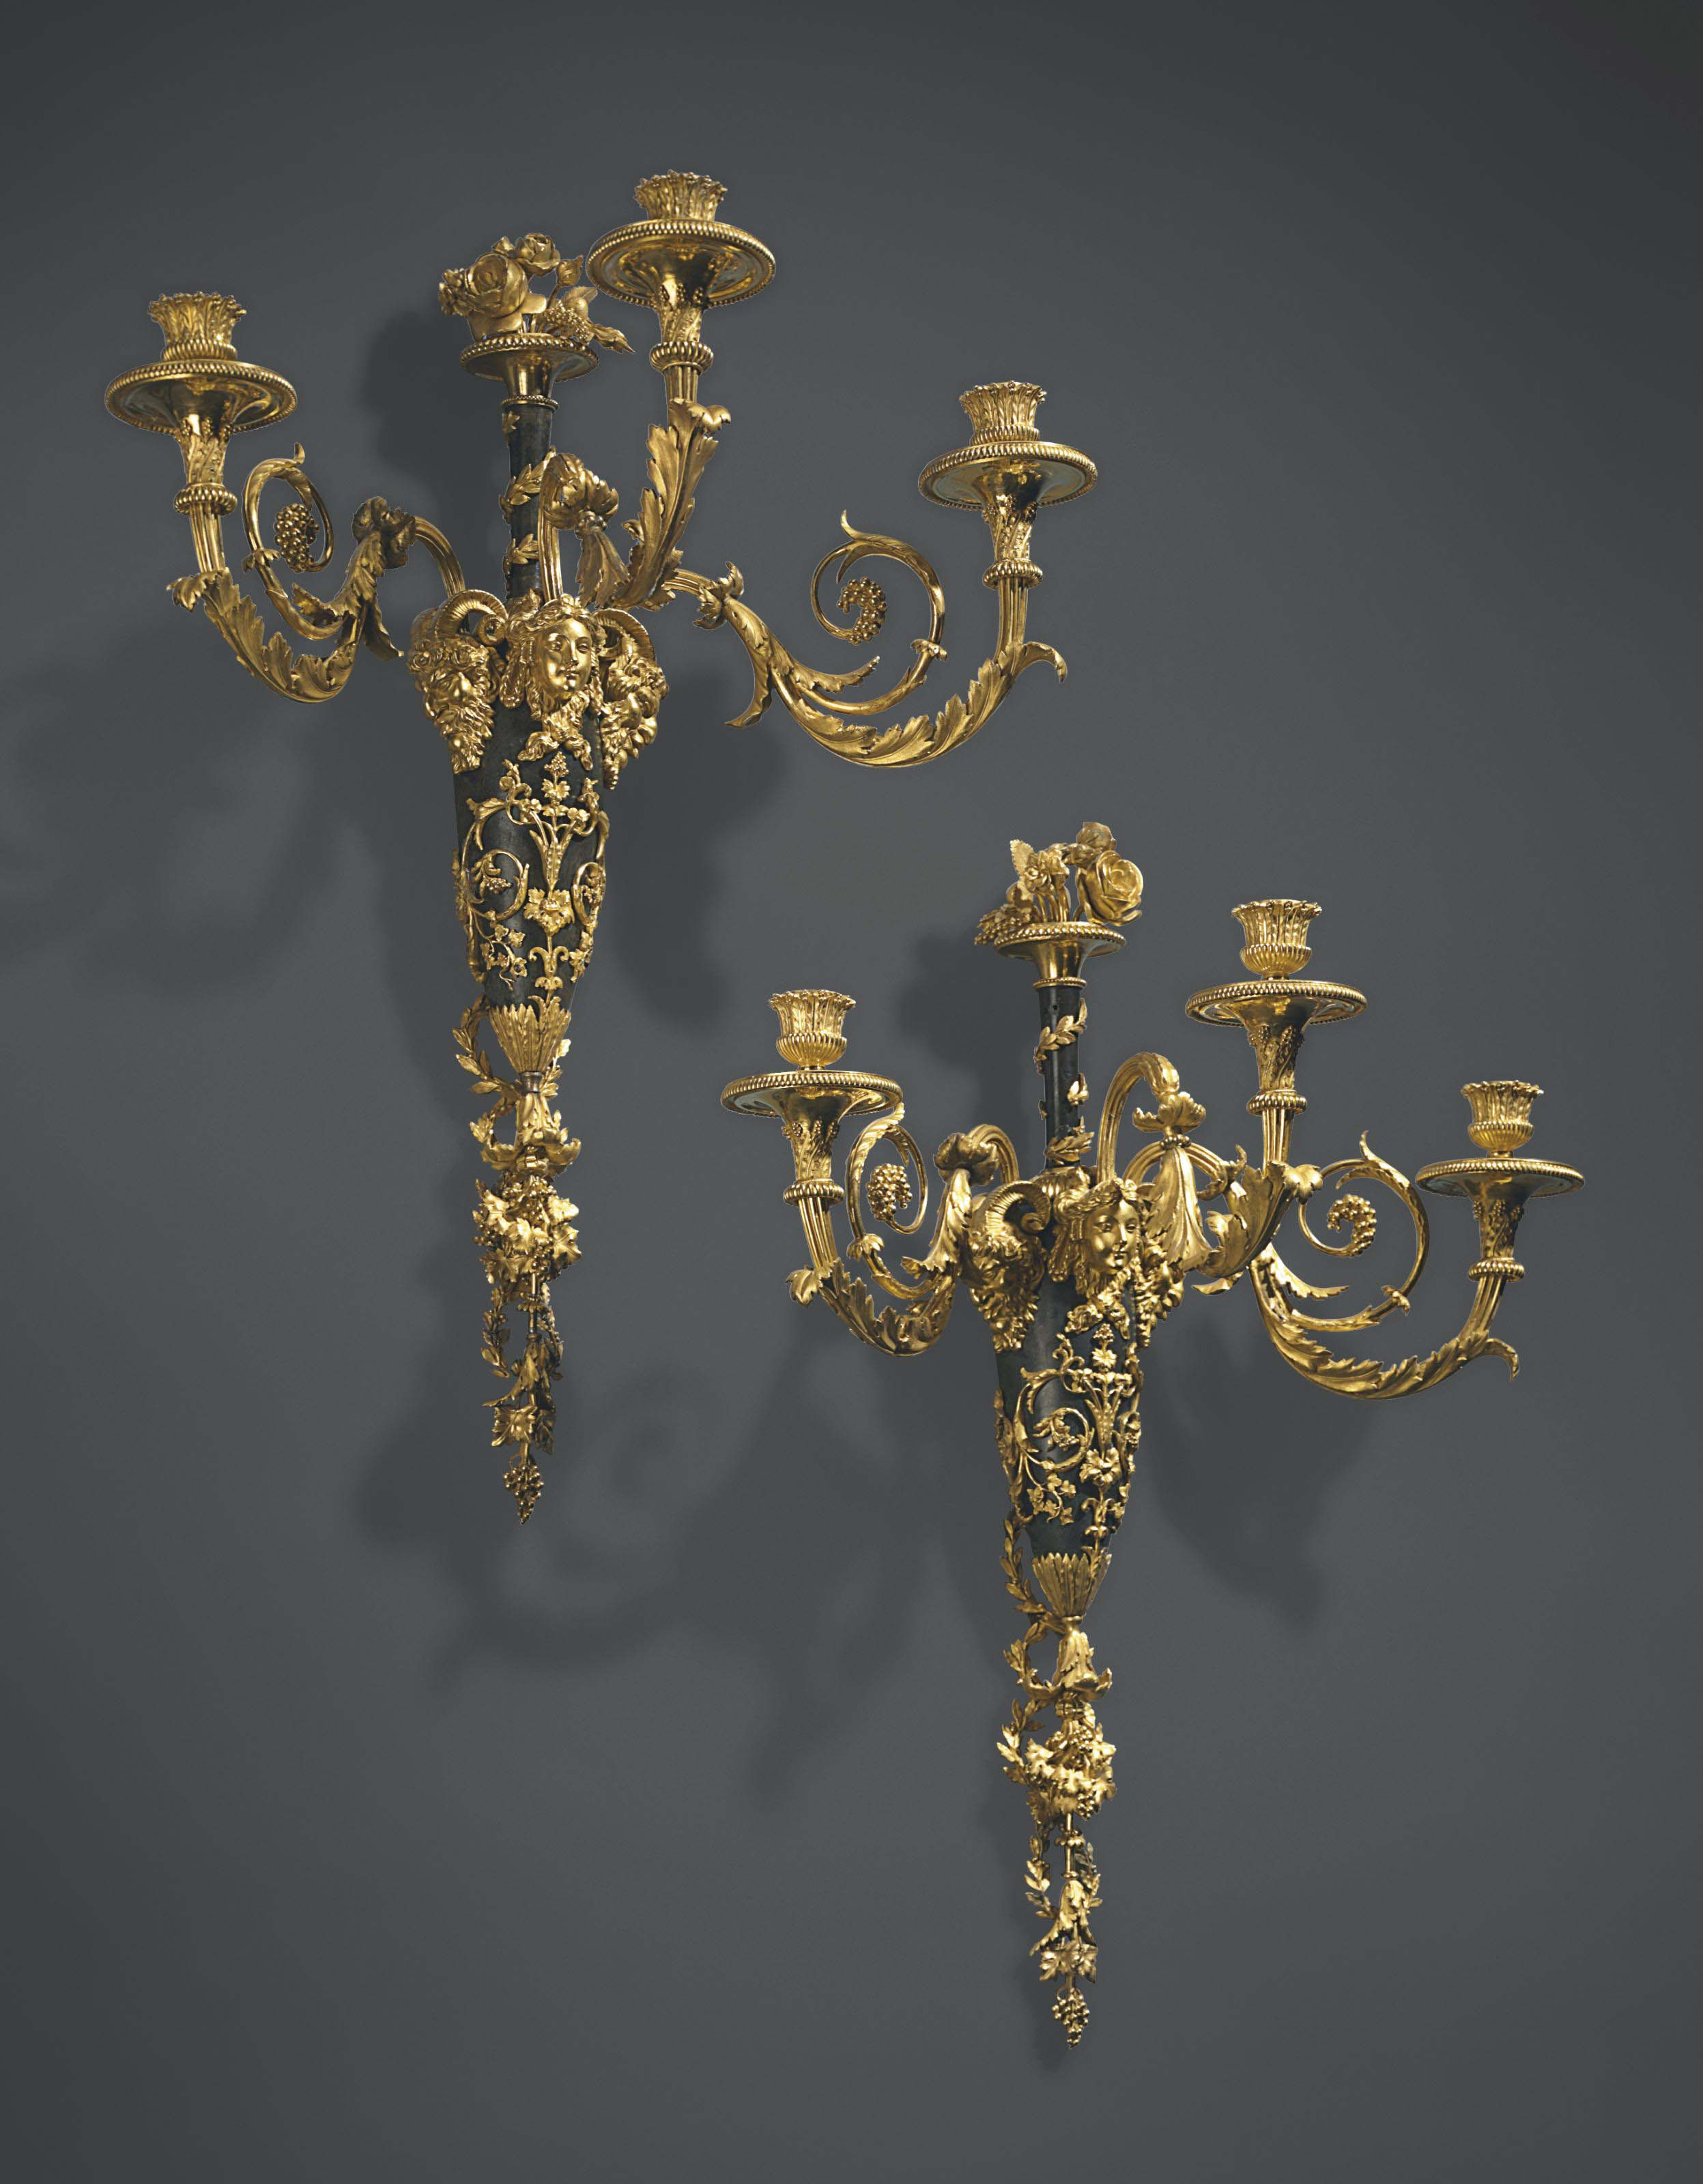 A PAIR OF LOUIS XVI ORMOLU AND PATINATED BRONZE THREE-BRANCH WALL-LIGHTS